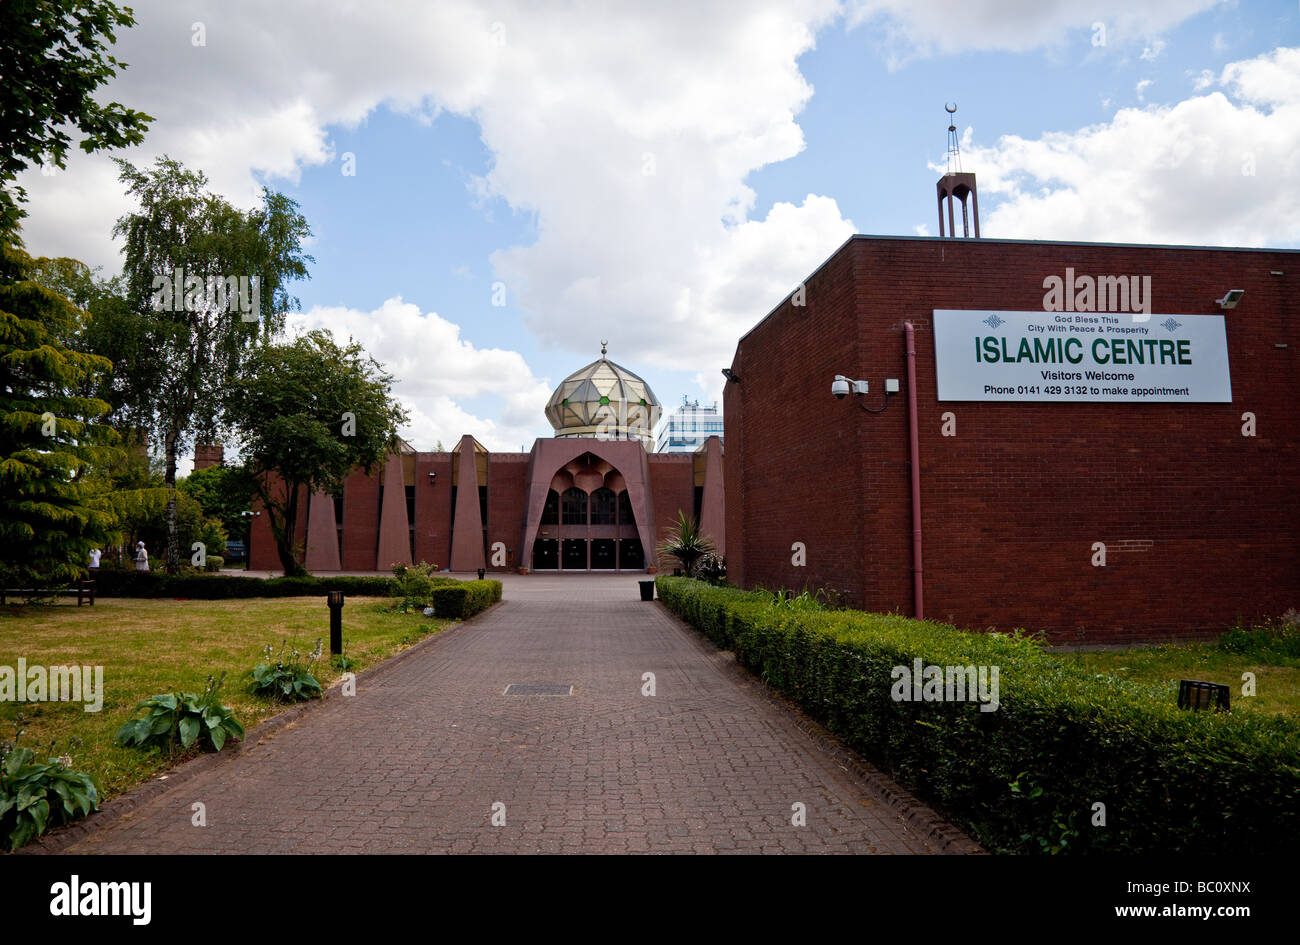 The main entrance to Glasgow Central Mosque and Islamic Centre, Scotland, UK - Stock Image